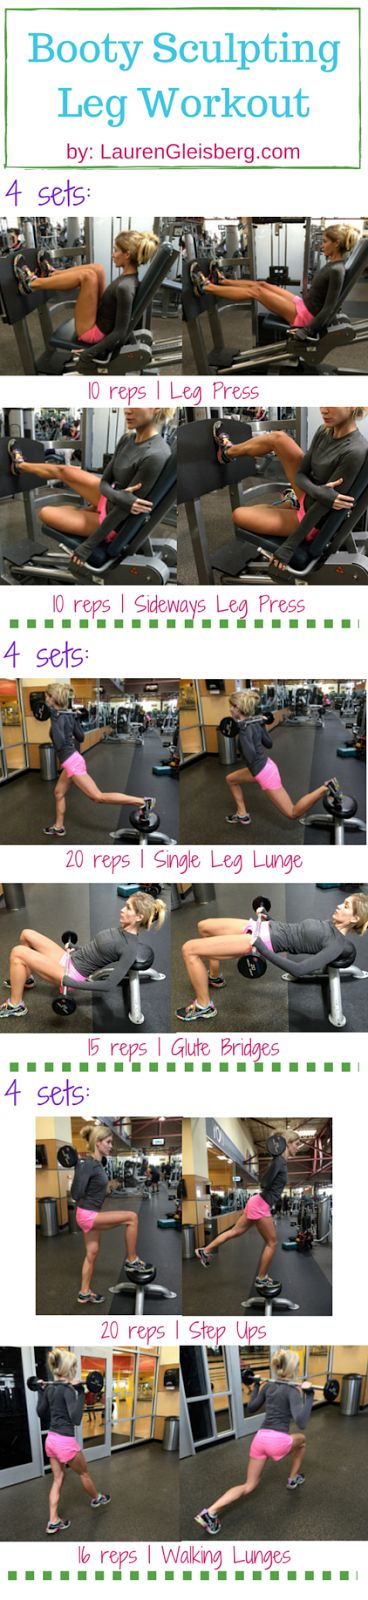 Day 24: Booty Sculpting Leg Workout | #LGKickStartFit Health & Fitness Challenge by LaurenGleisberg.com